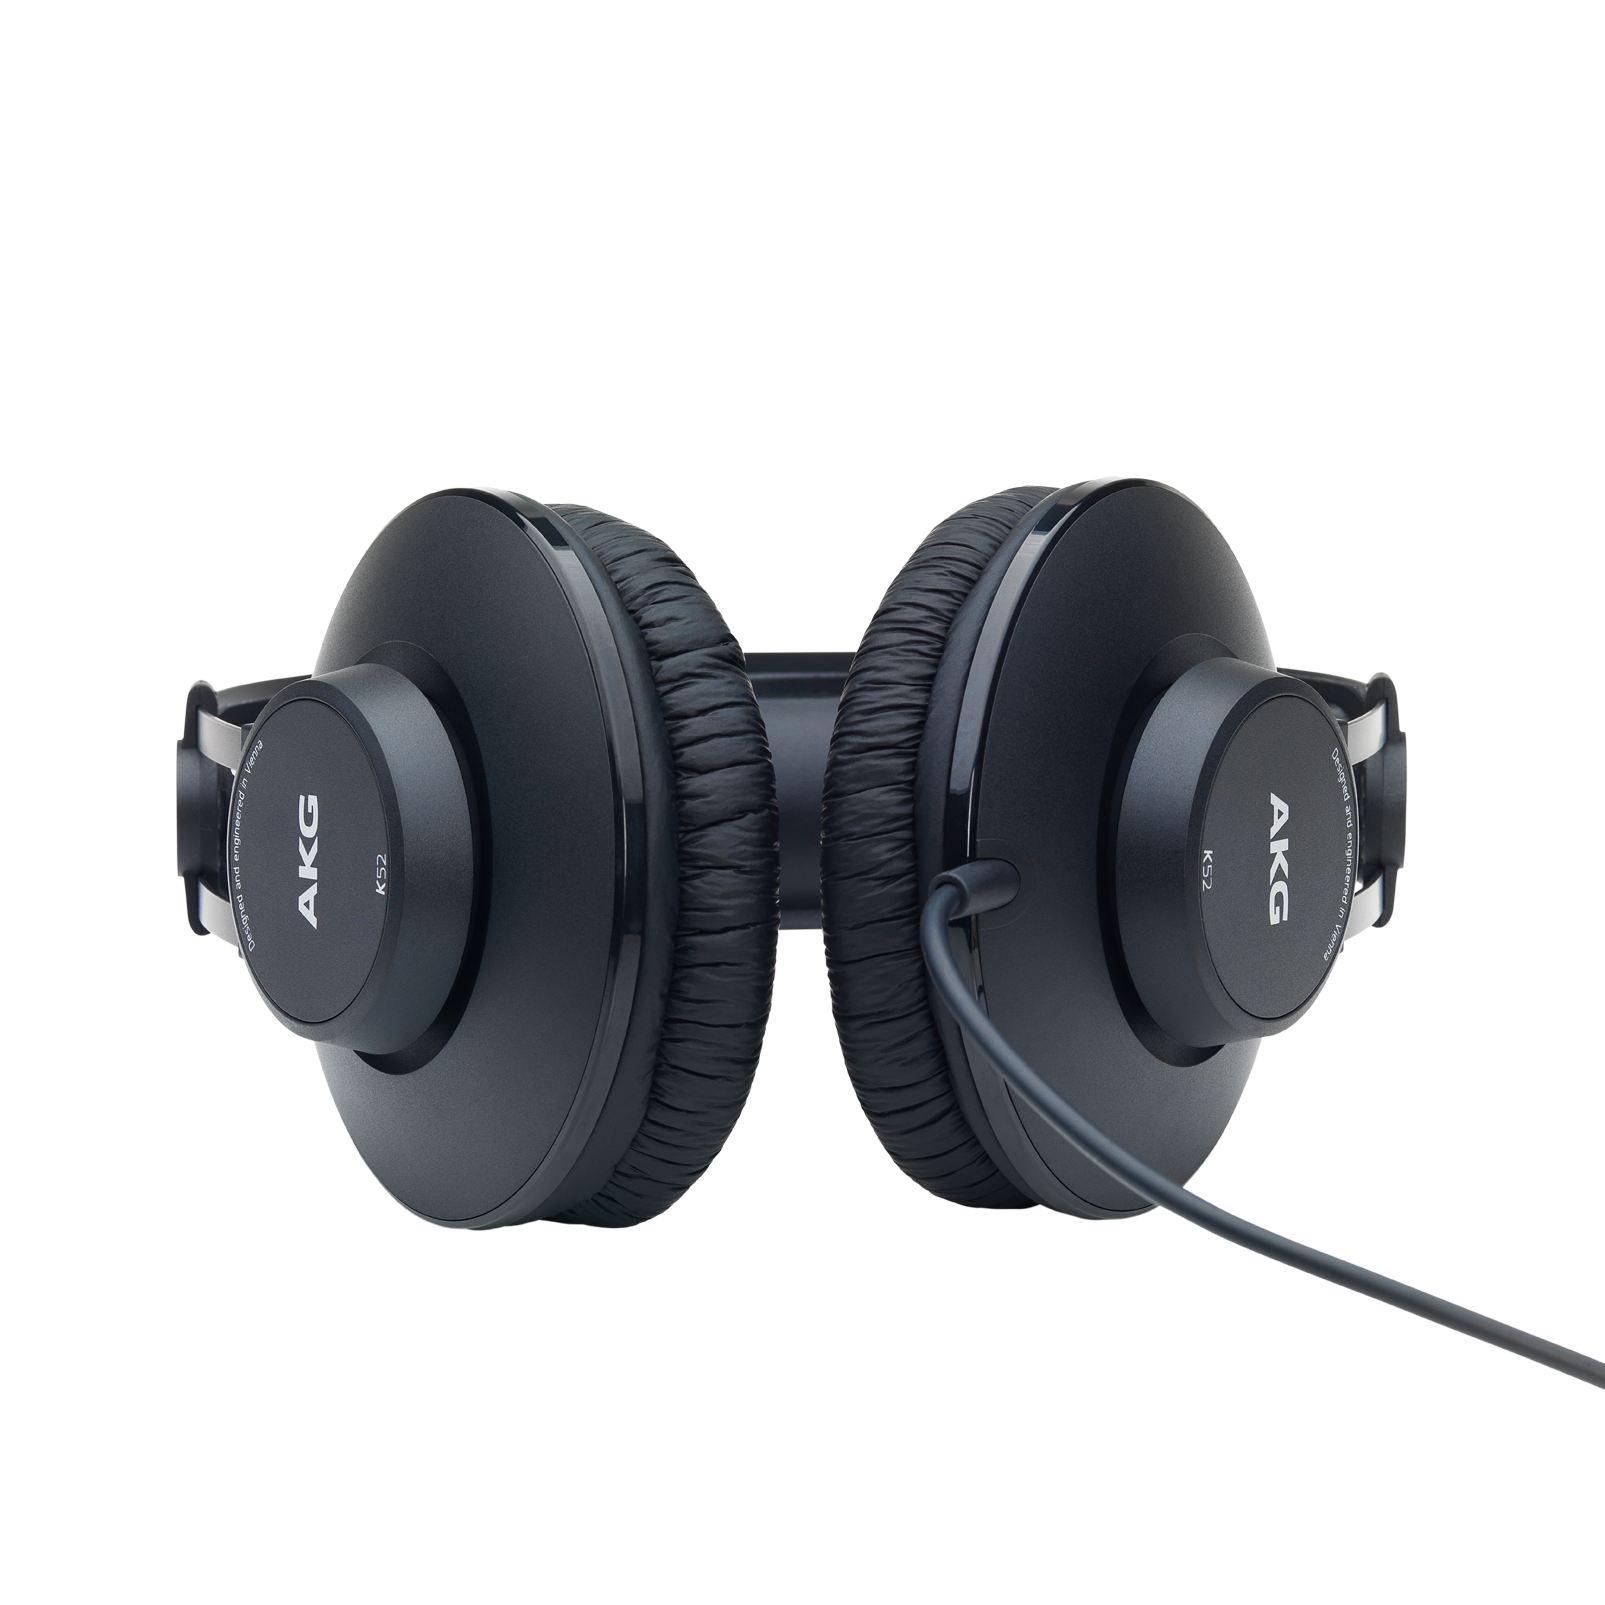 K52 - Black - Closed-back headphones - Detailshot 1